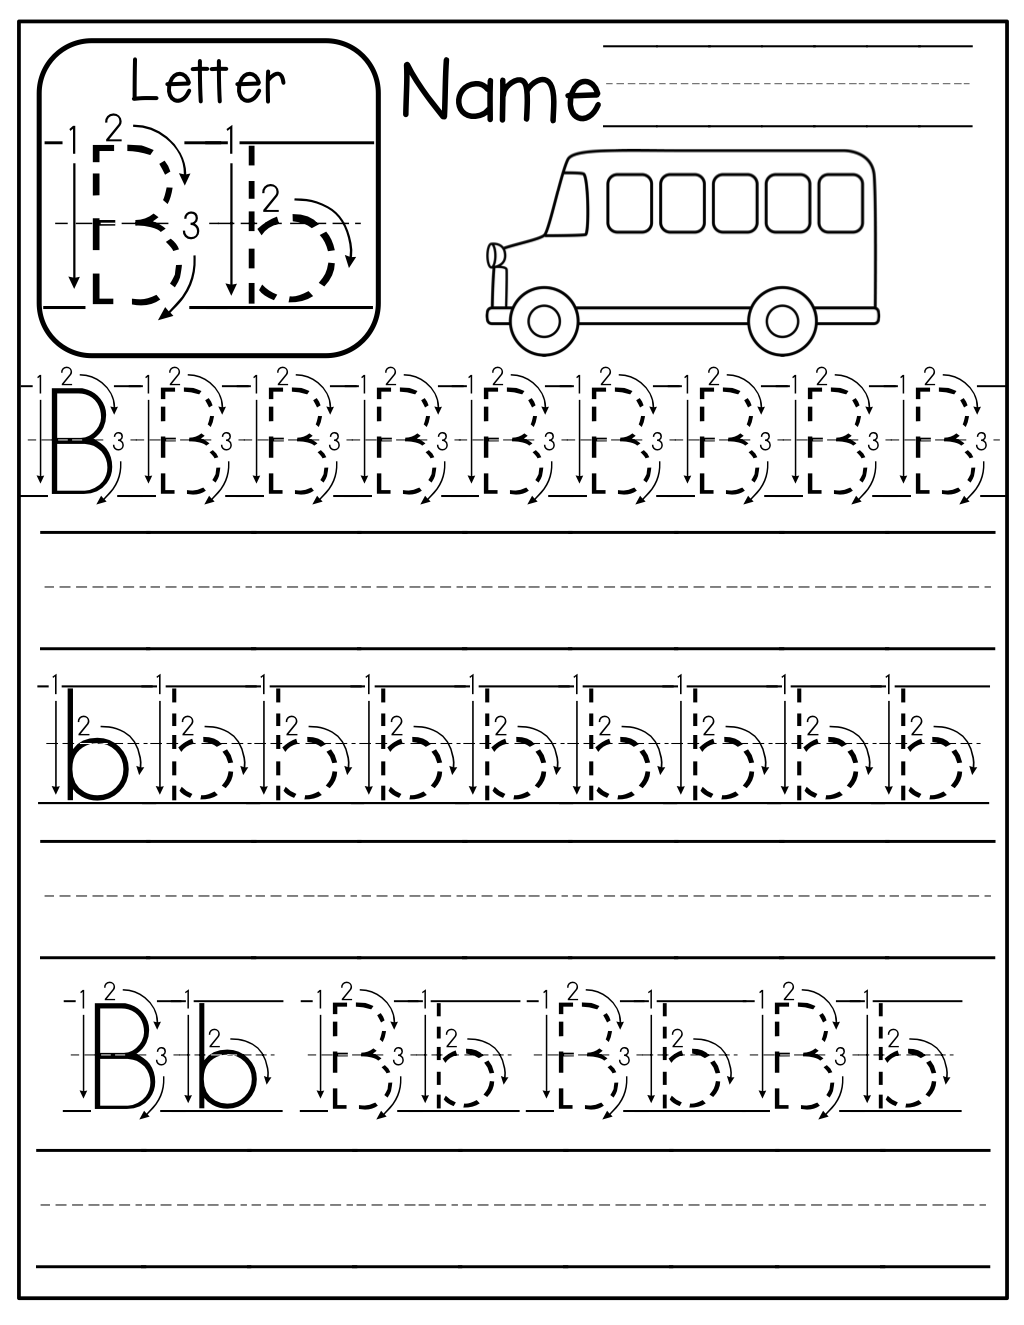 Nelson Handwriting Worksheets